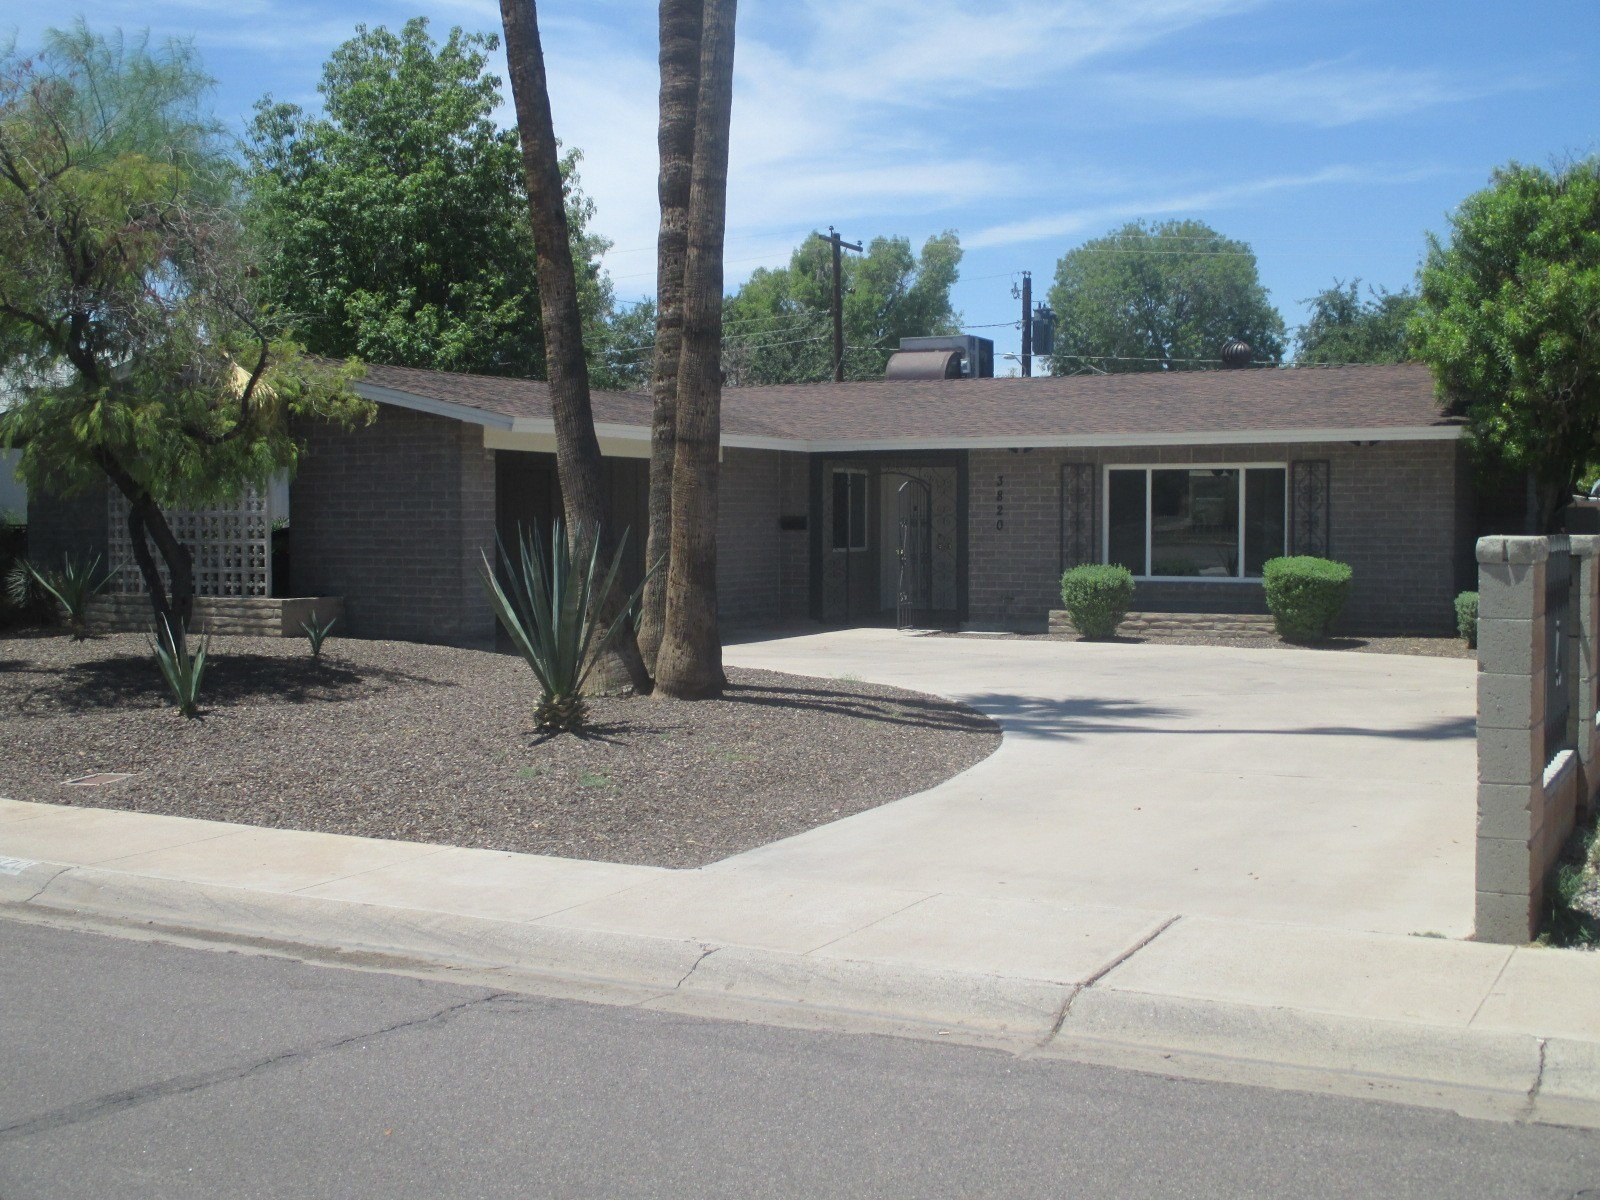 Best 6 Bedroom House For Rent In Tempe Az Available – Krk Realty And Management With Pictures